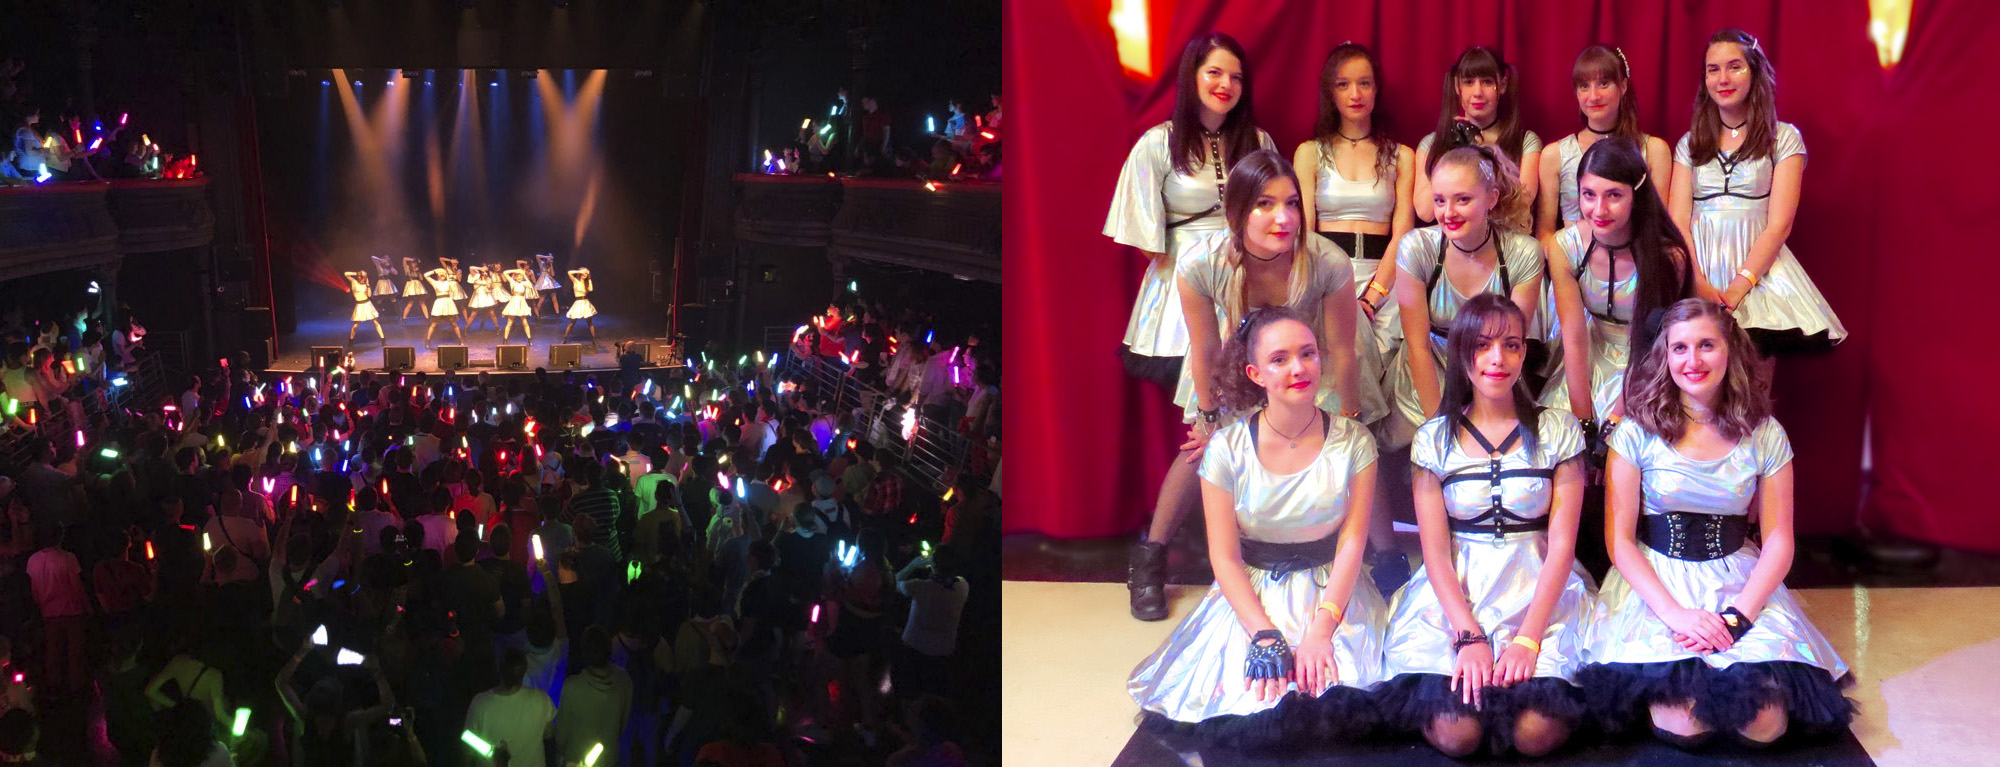 Bonjour Idol ANGERME Paris concert opening act Amaitsuki live performance